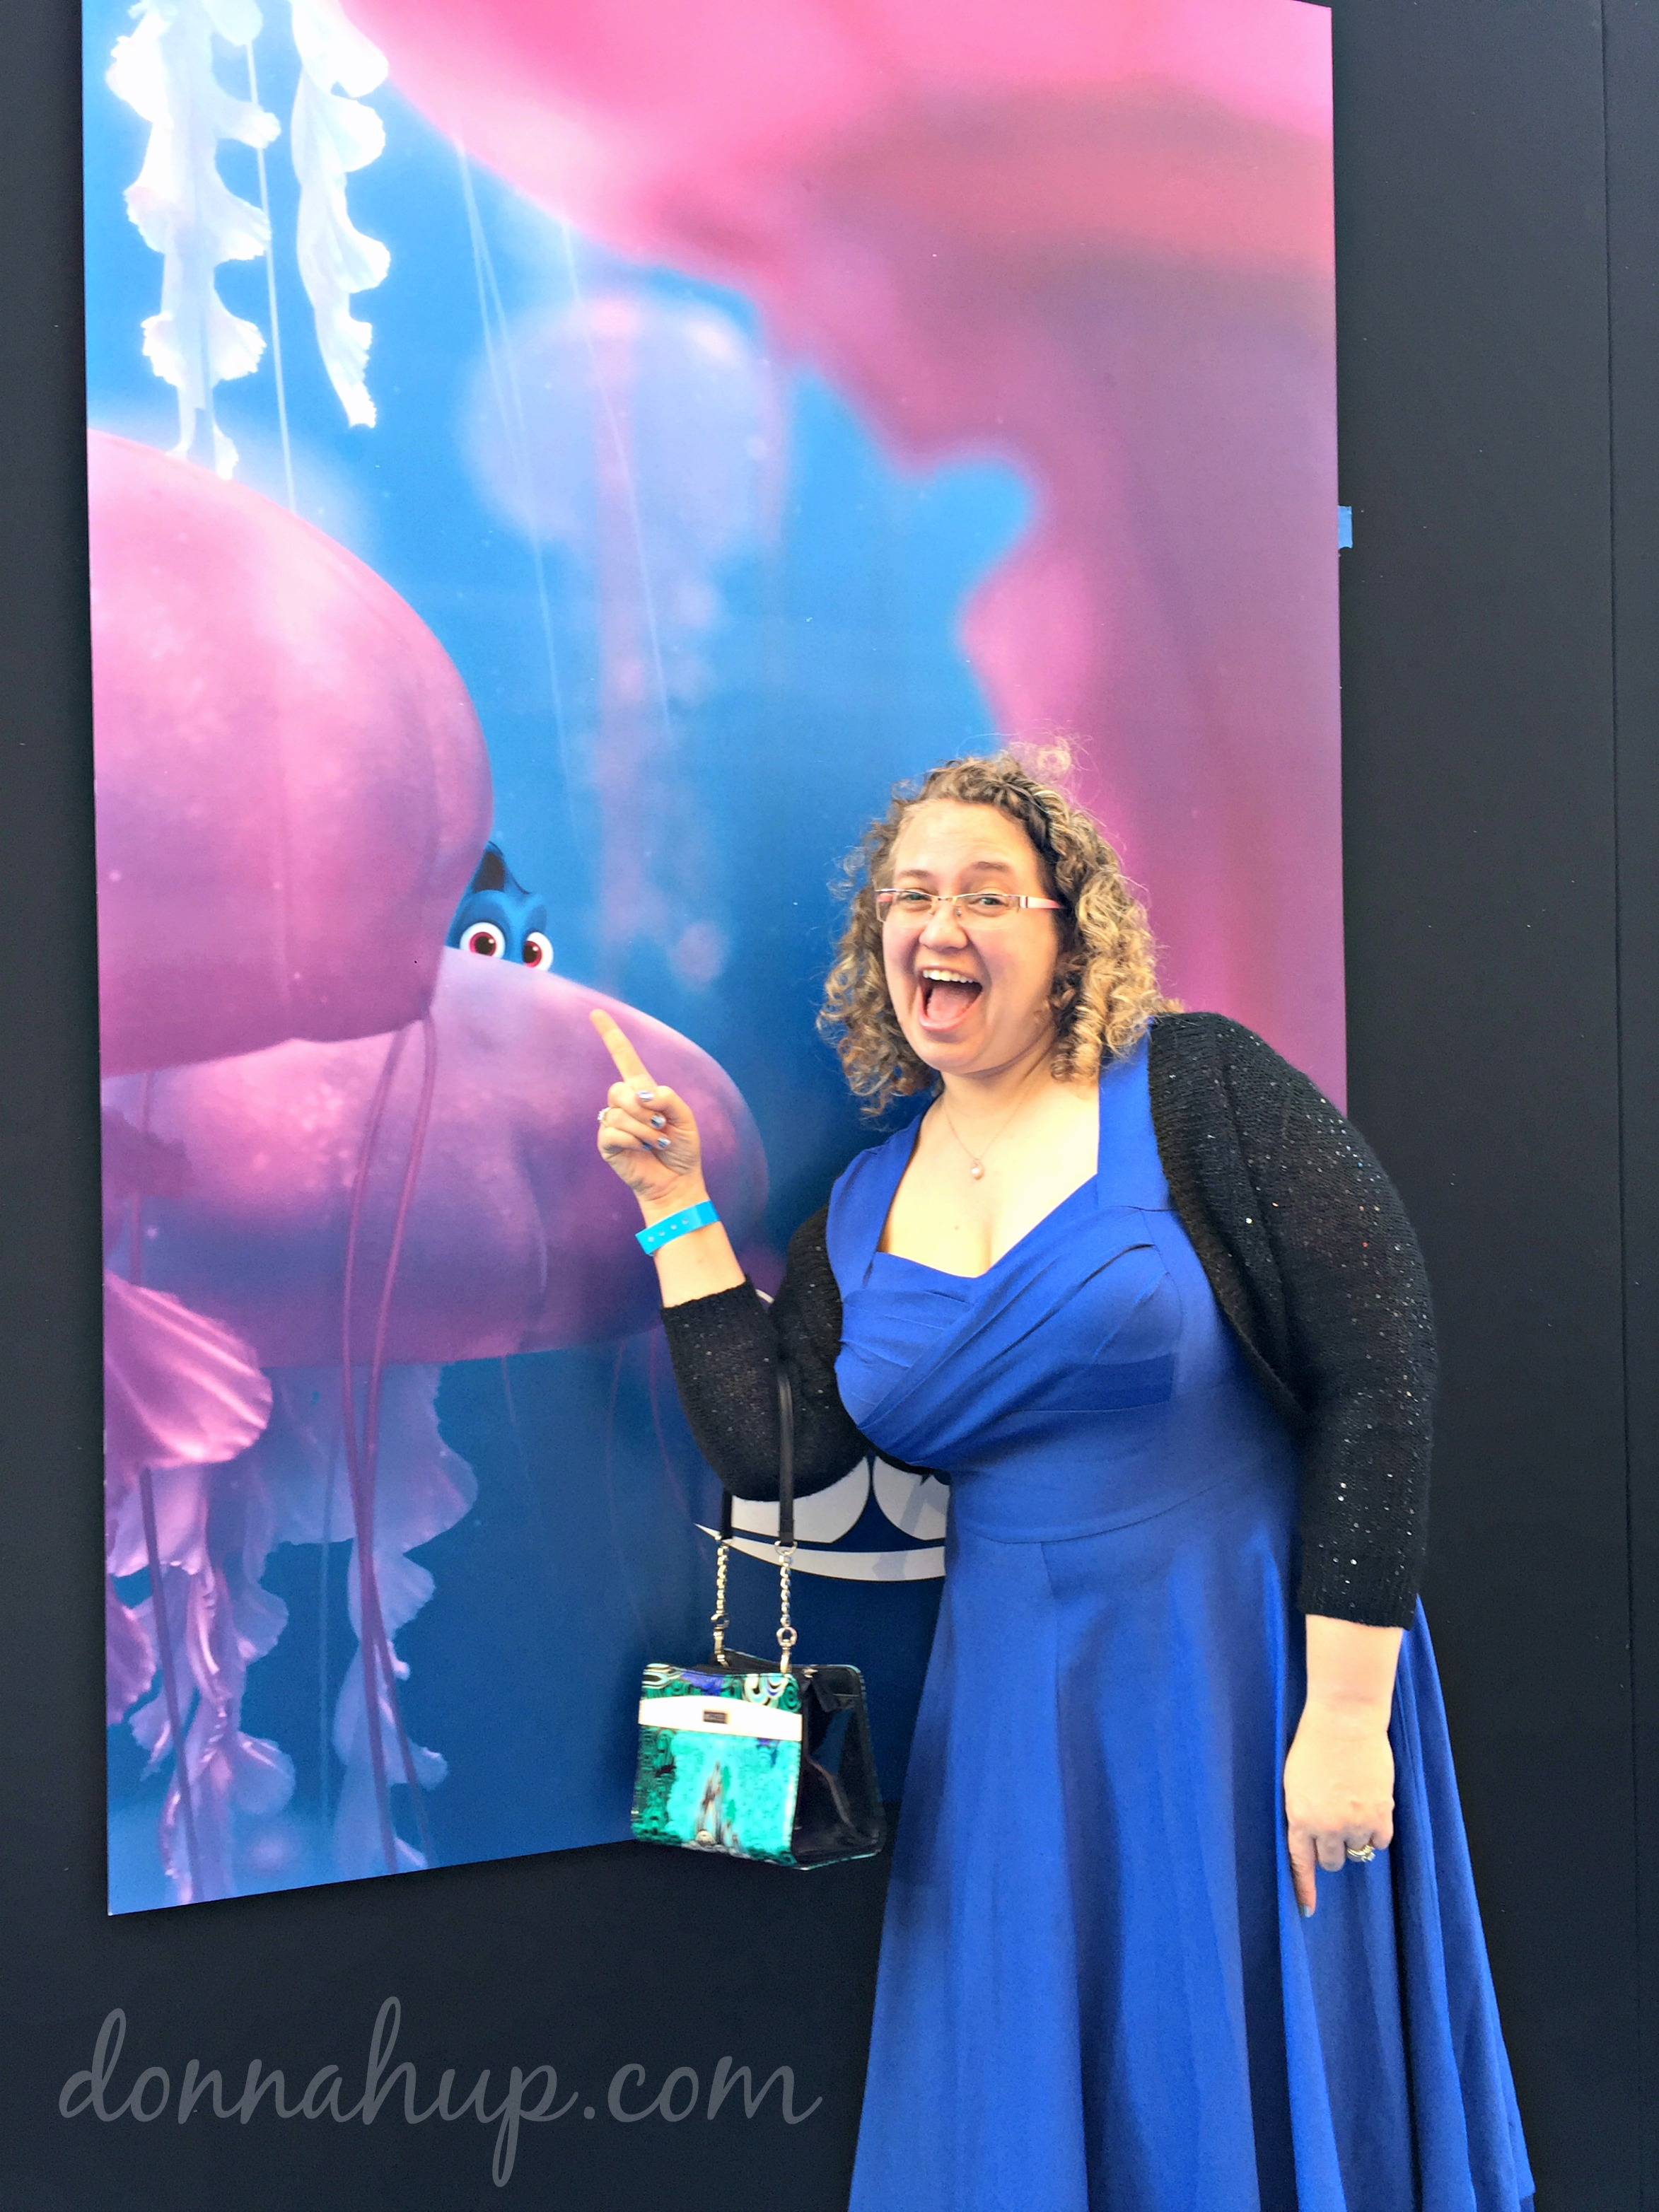 I was at the FINDING DORY World Premiere! #FindingDoryEvent #HaveYouSeenHer